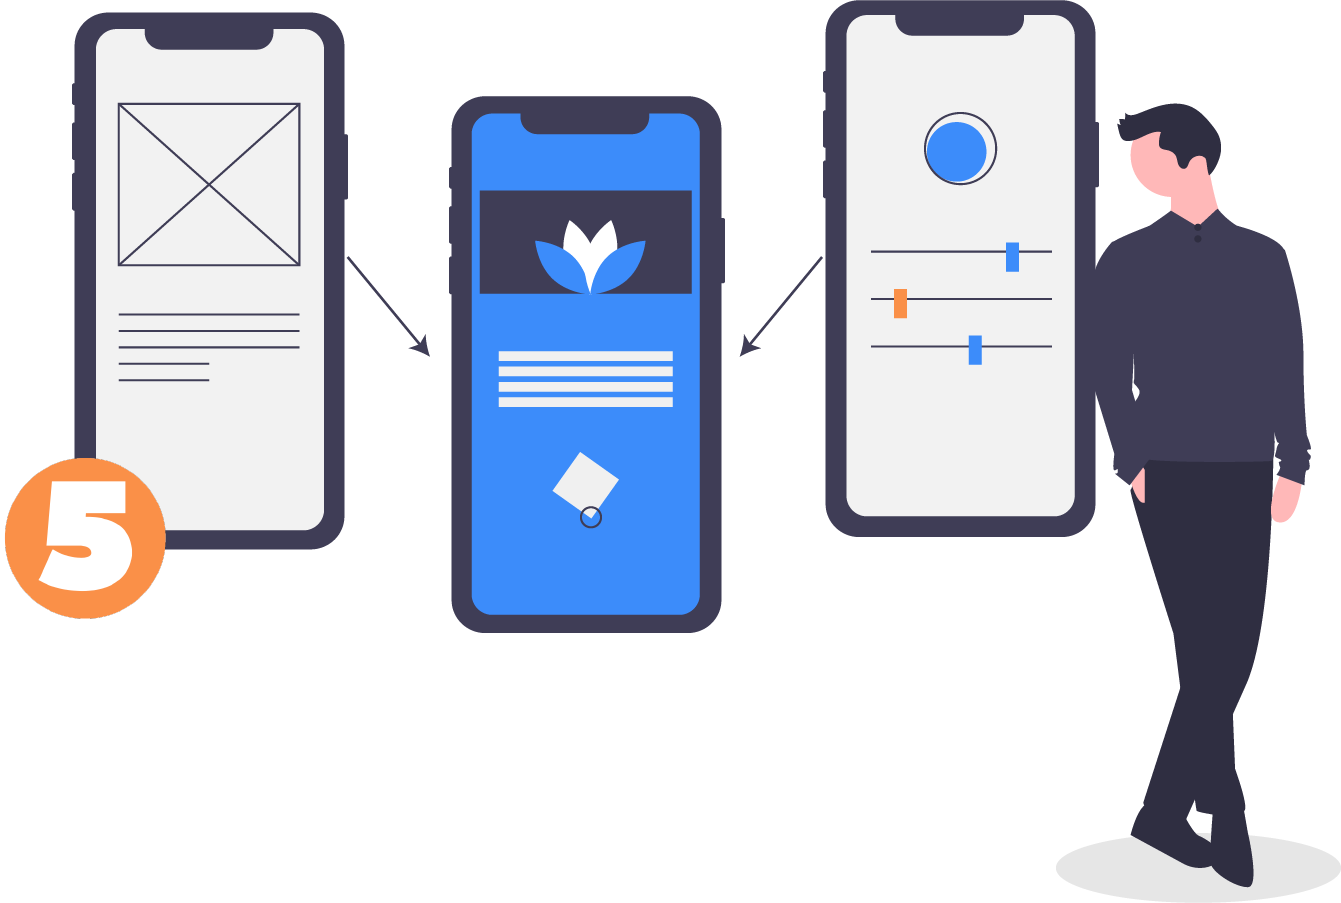 Product-led communication illustration about validating the sprint designs.